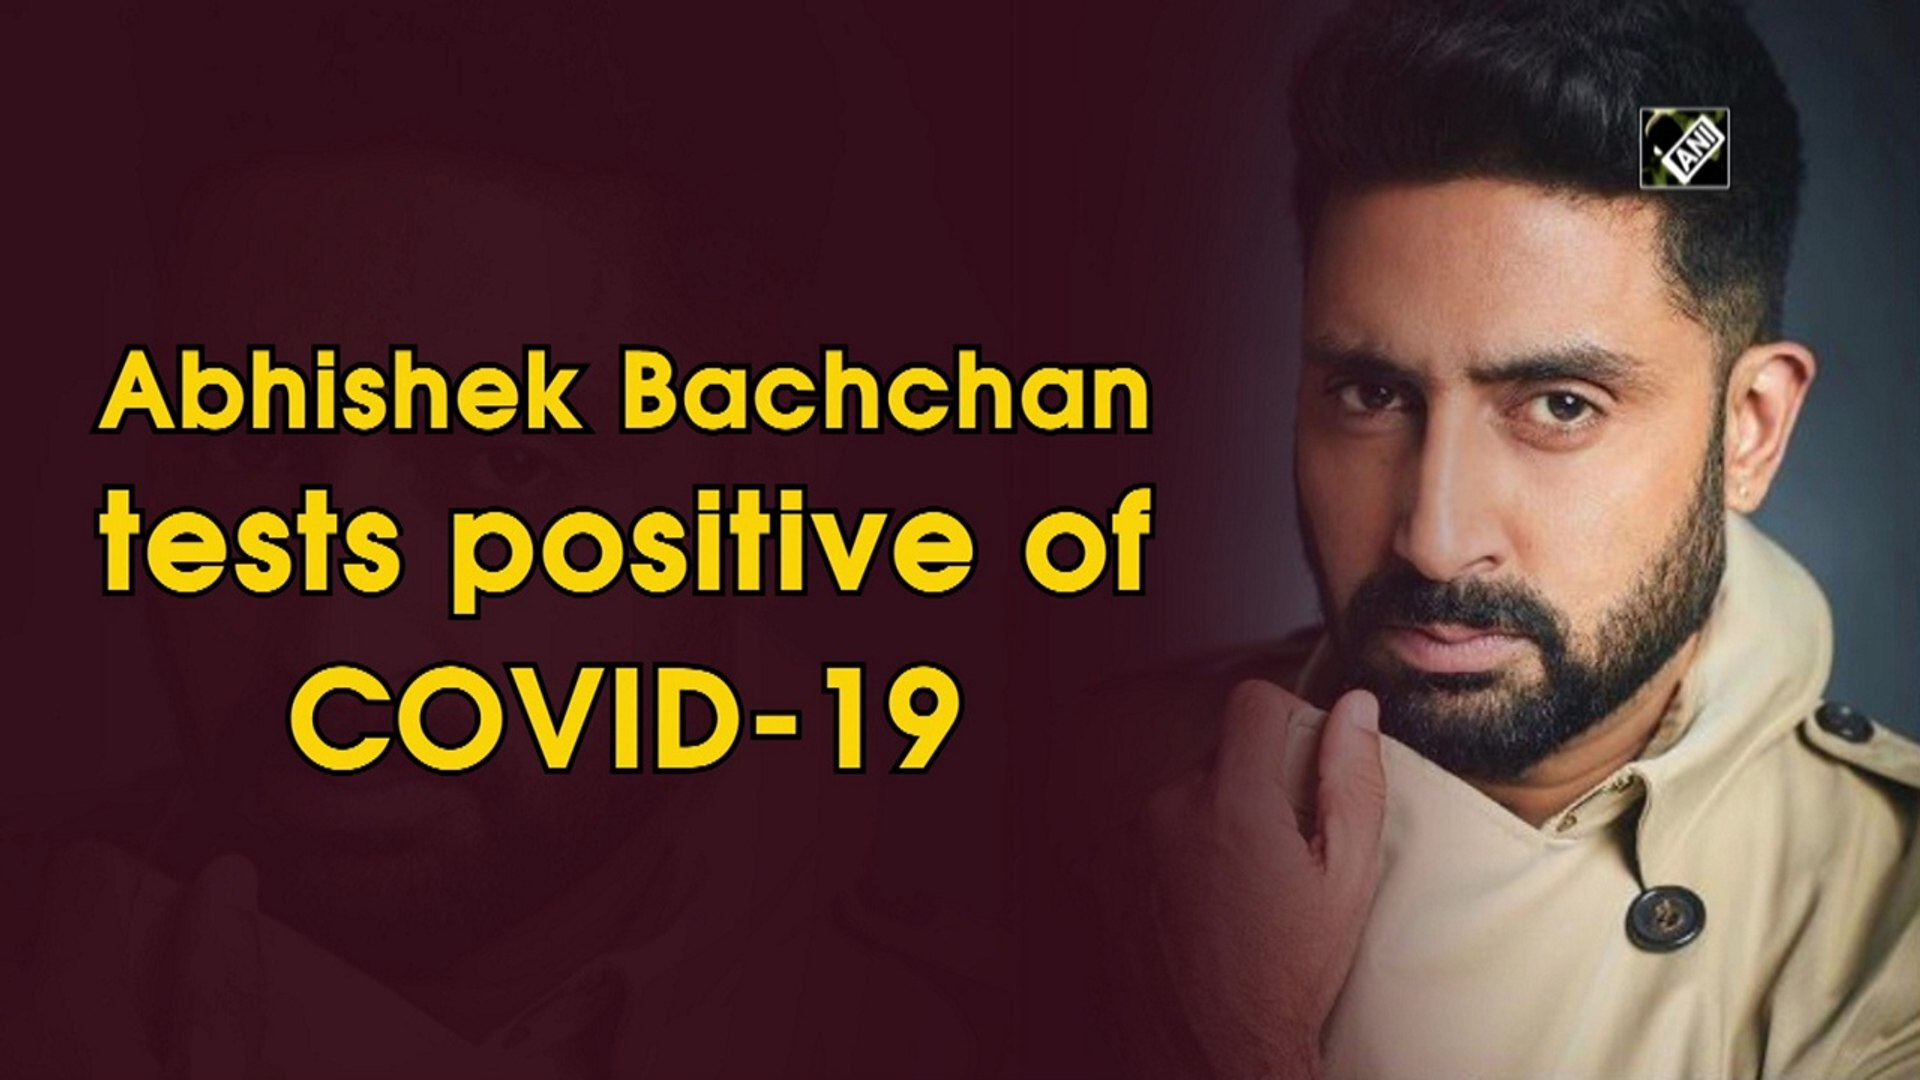 Abhishek Bachchan tests positive of Covid-19